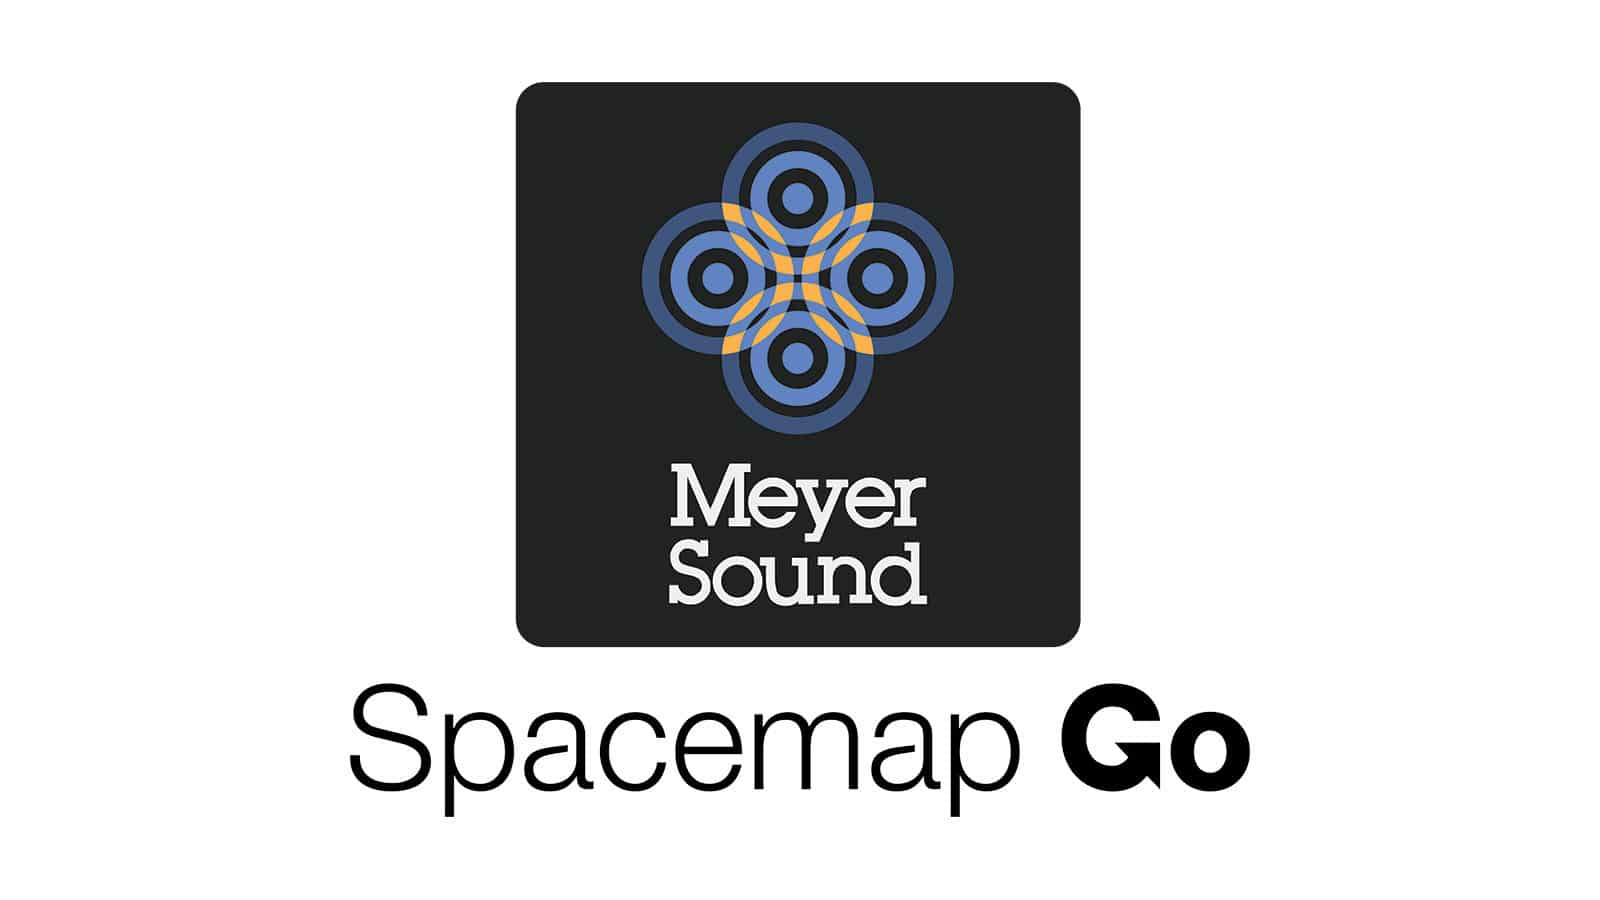 Spacemap Go Spatial Sound Design and Mixing Tool